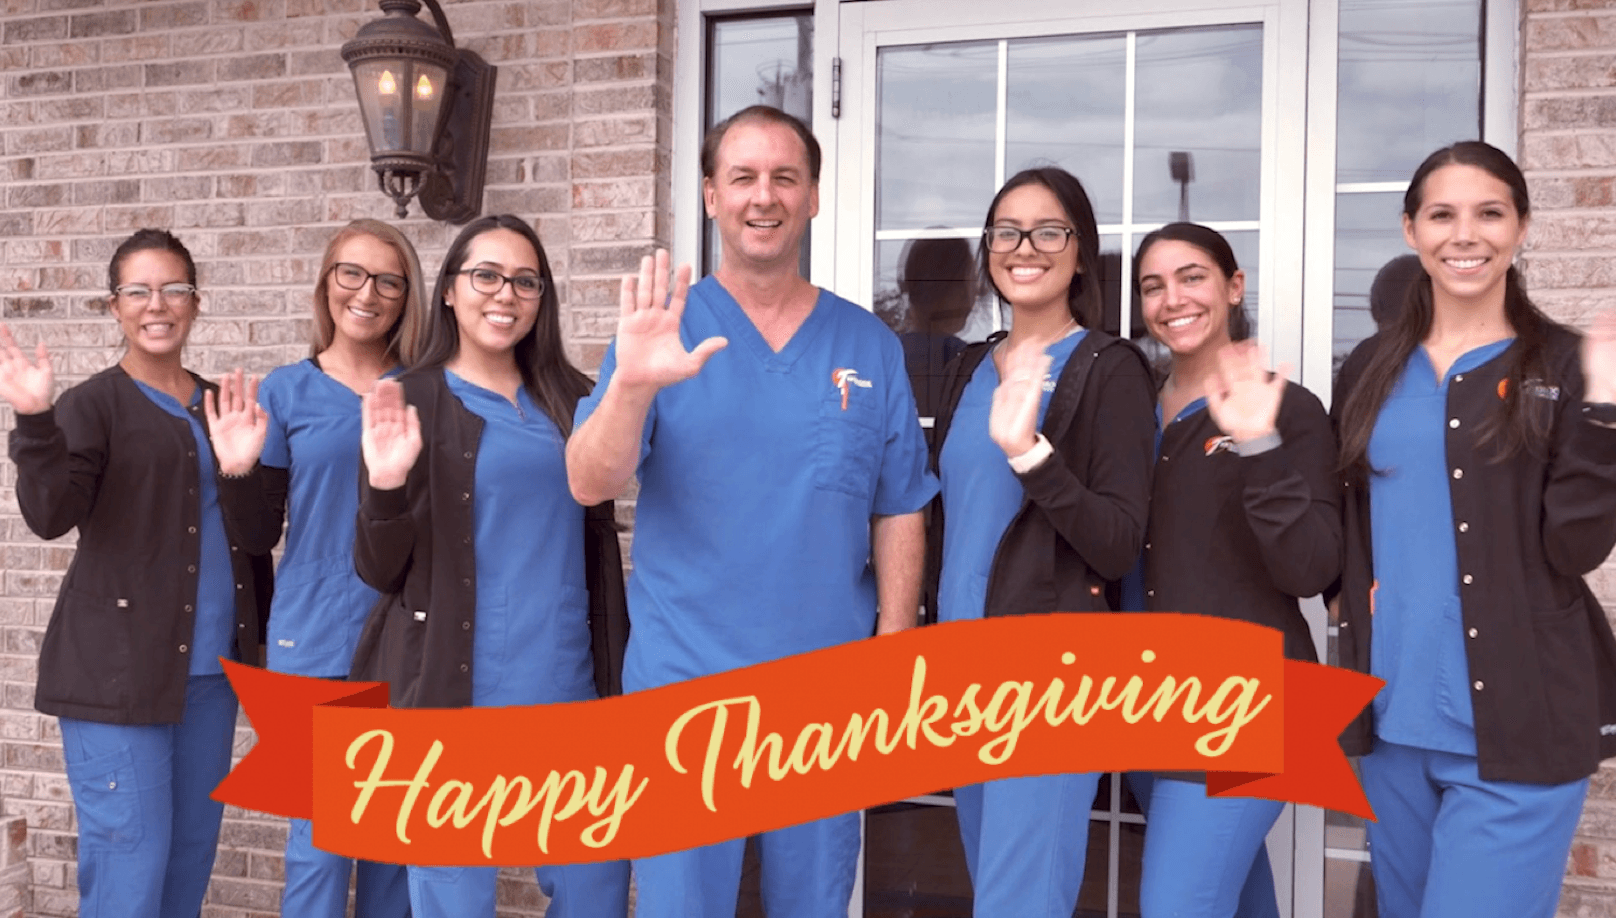 Happy Thanksgiving to All of Our Patients & Friends